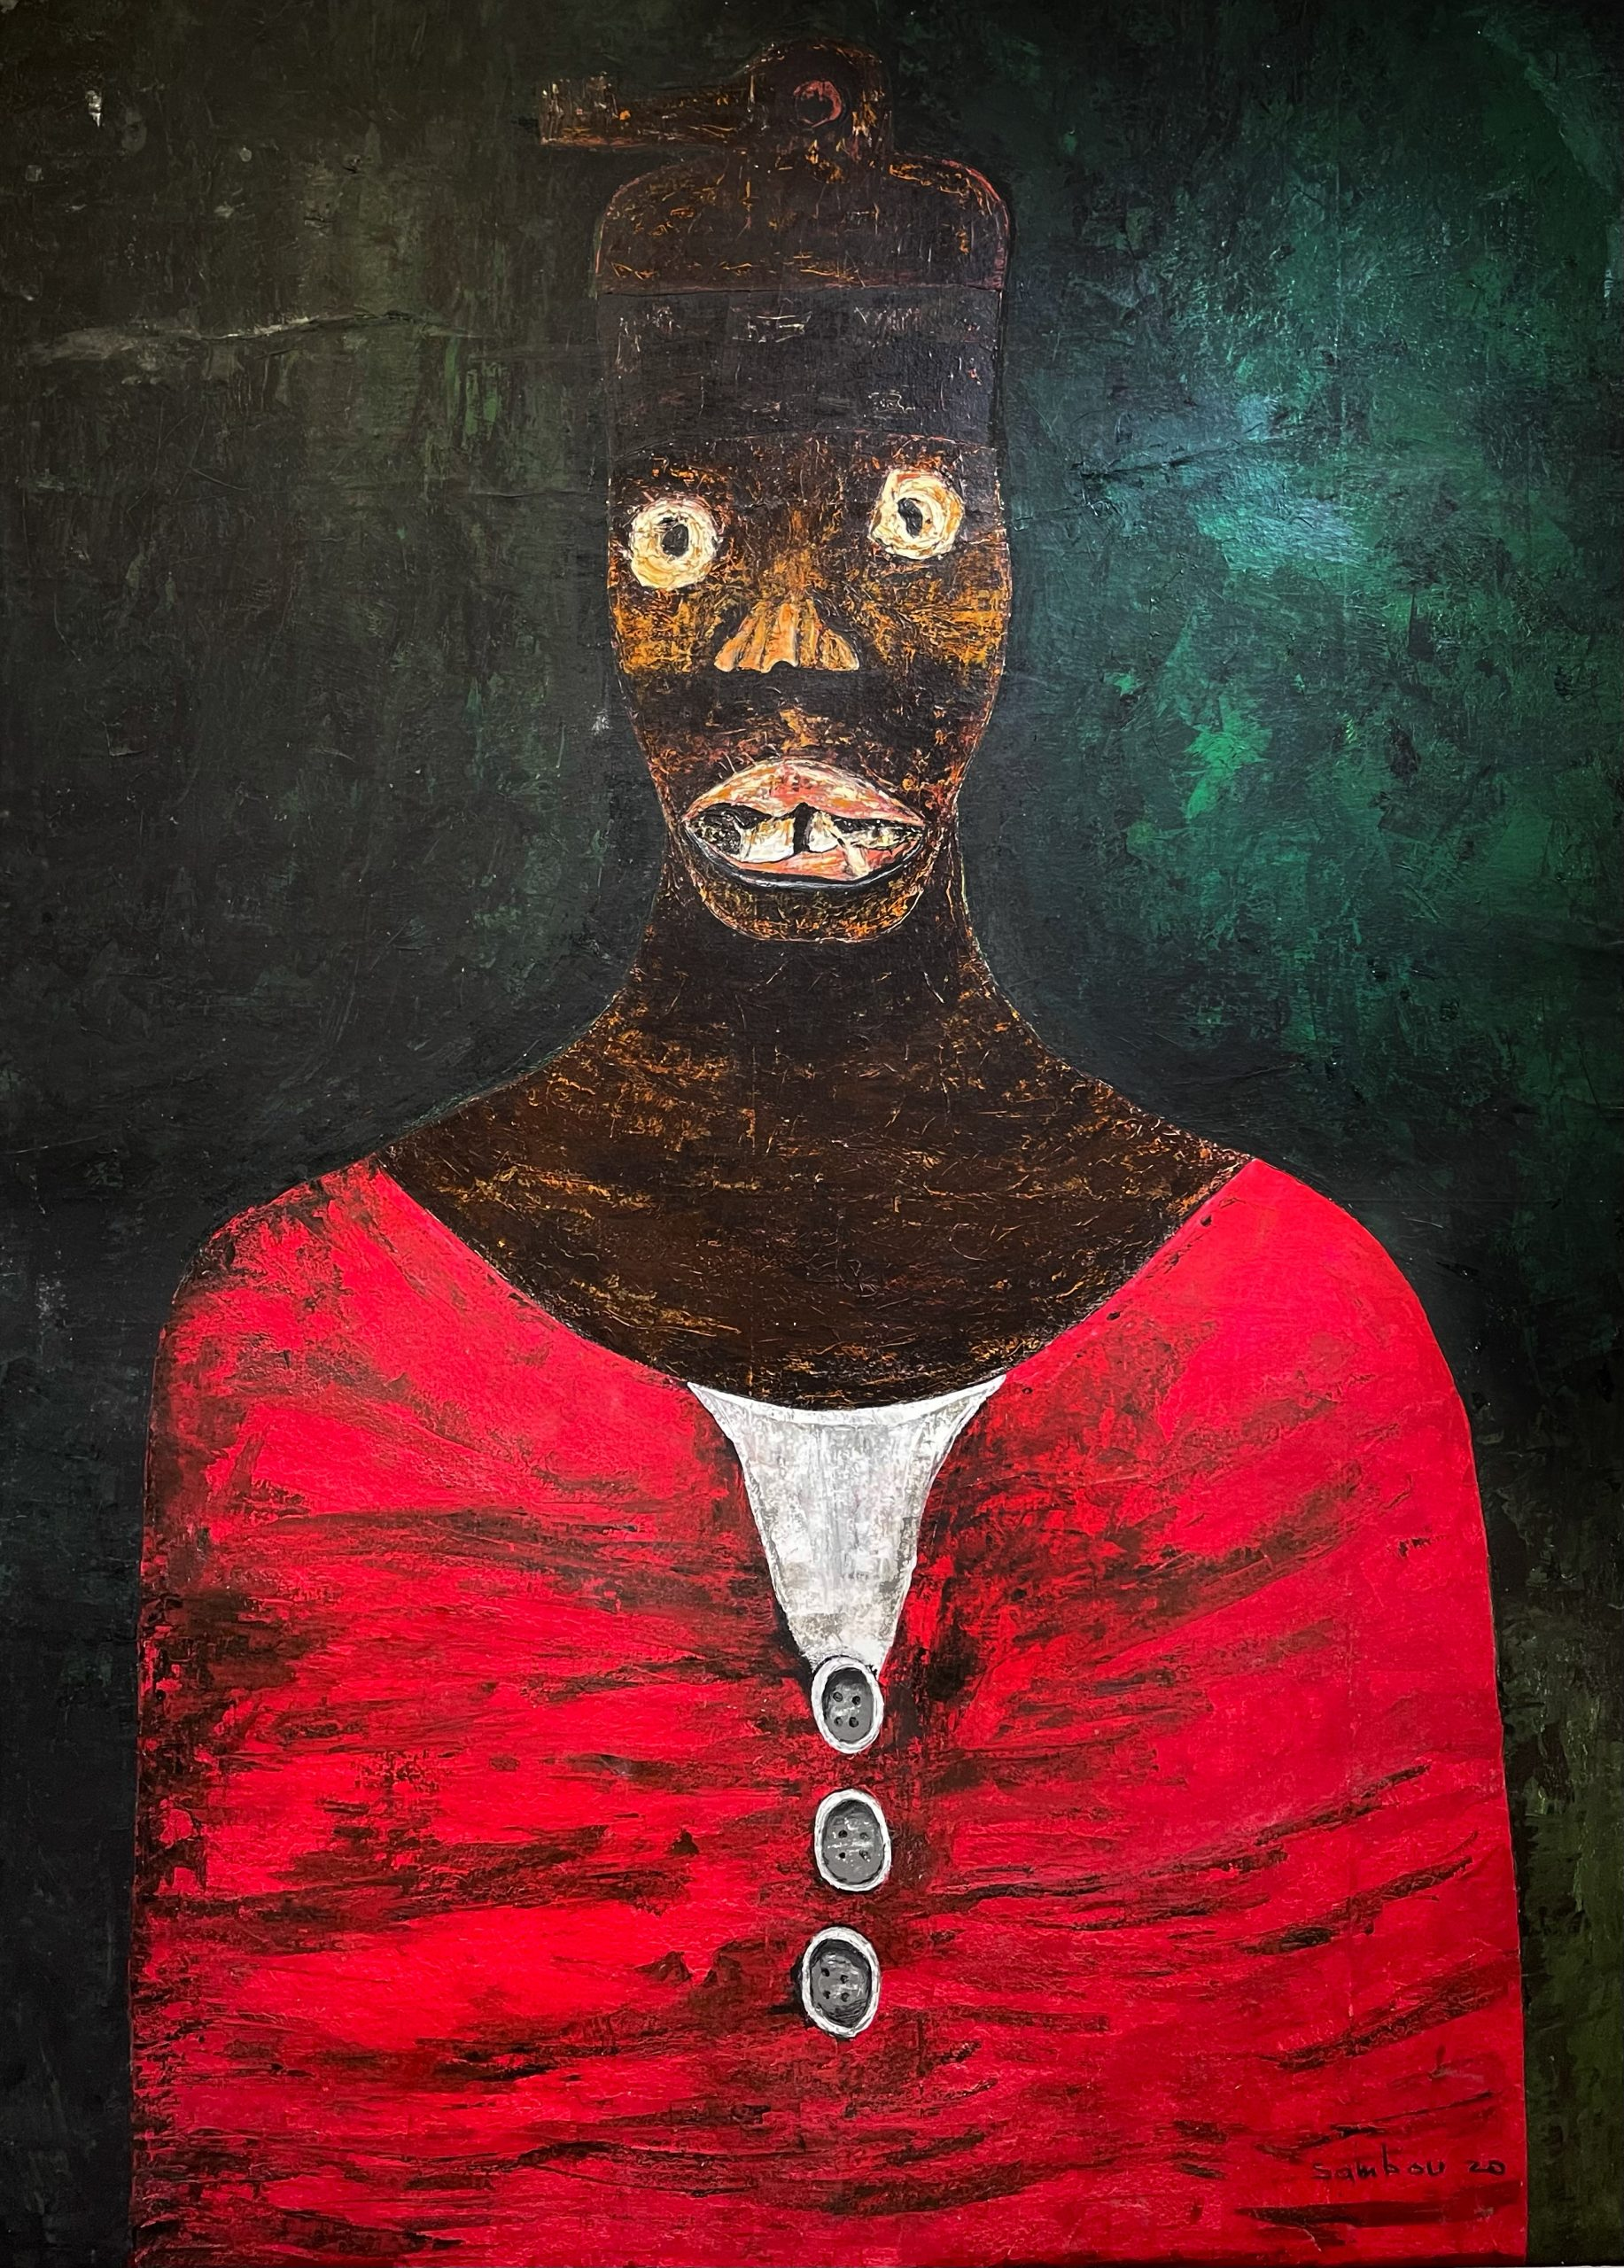 Sambou Diouf, 'Fang', 2020. Courtesy of OH GALLERY and the artist